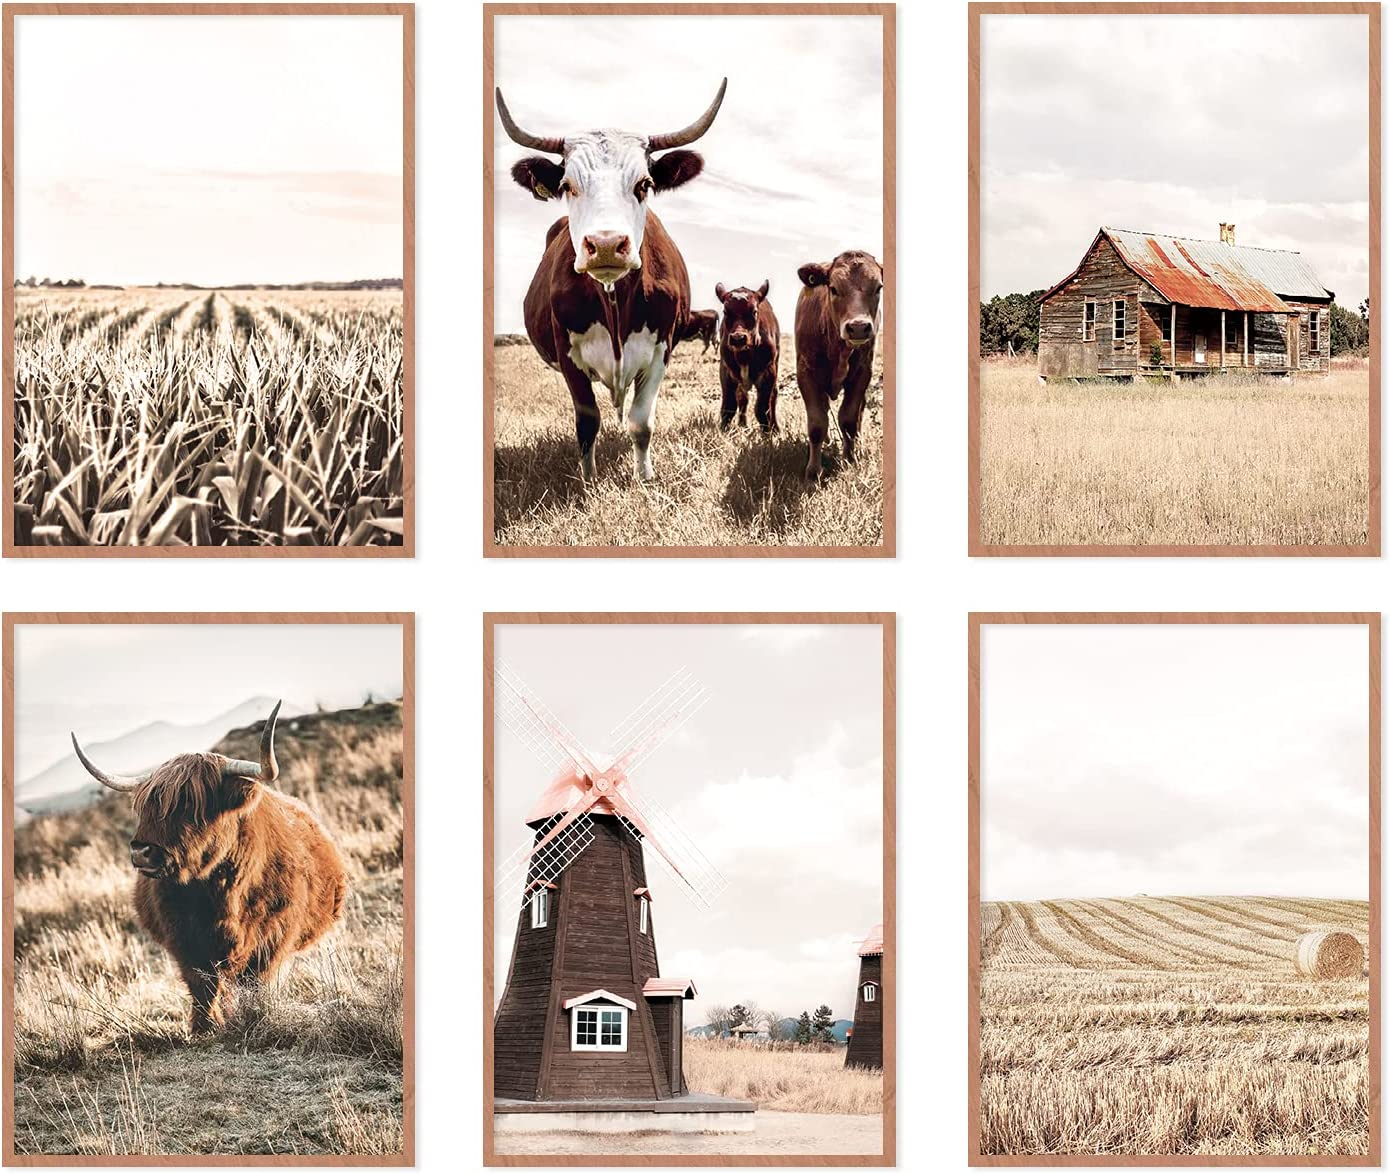 YUMKNOW Farmhouse Cow Wall Decor - Unframed Set of 6, 8x10, Modern Country Highland Cow Pictures for Bathroom, Bedroom Cottage Rustic Art Vintage Posters for Living Room Neutral Cow Decor Stuff Gifts